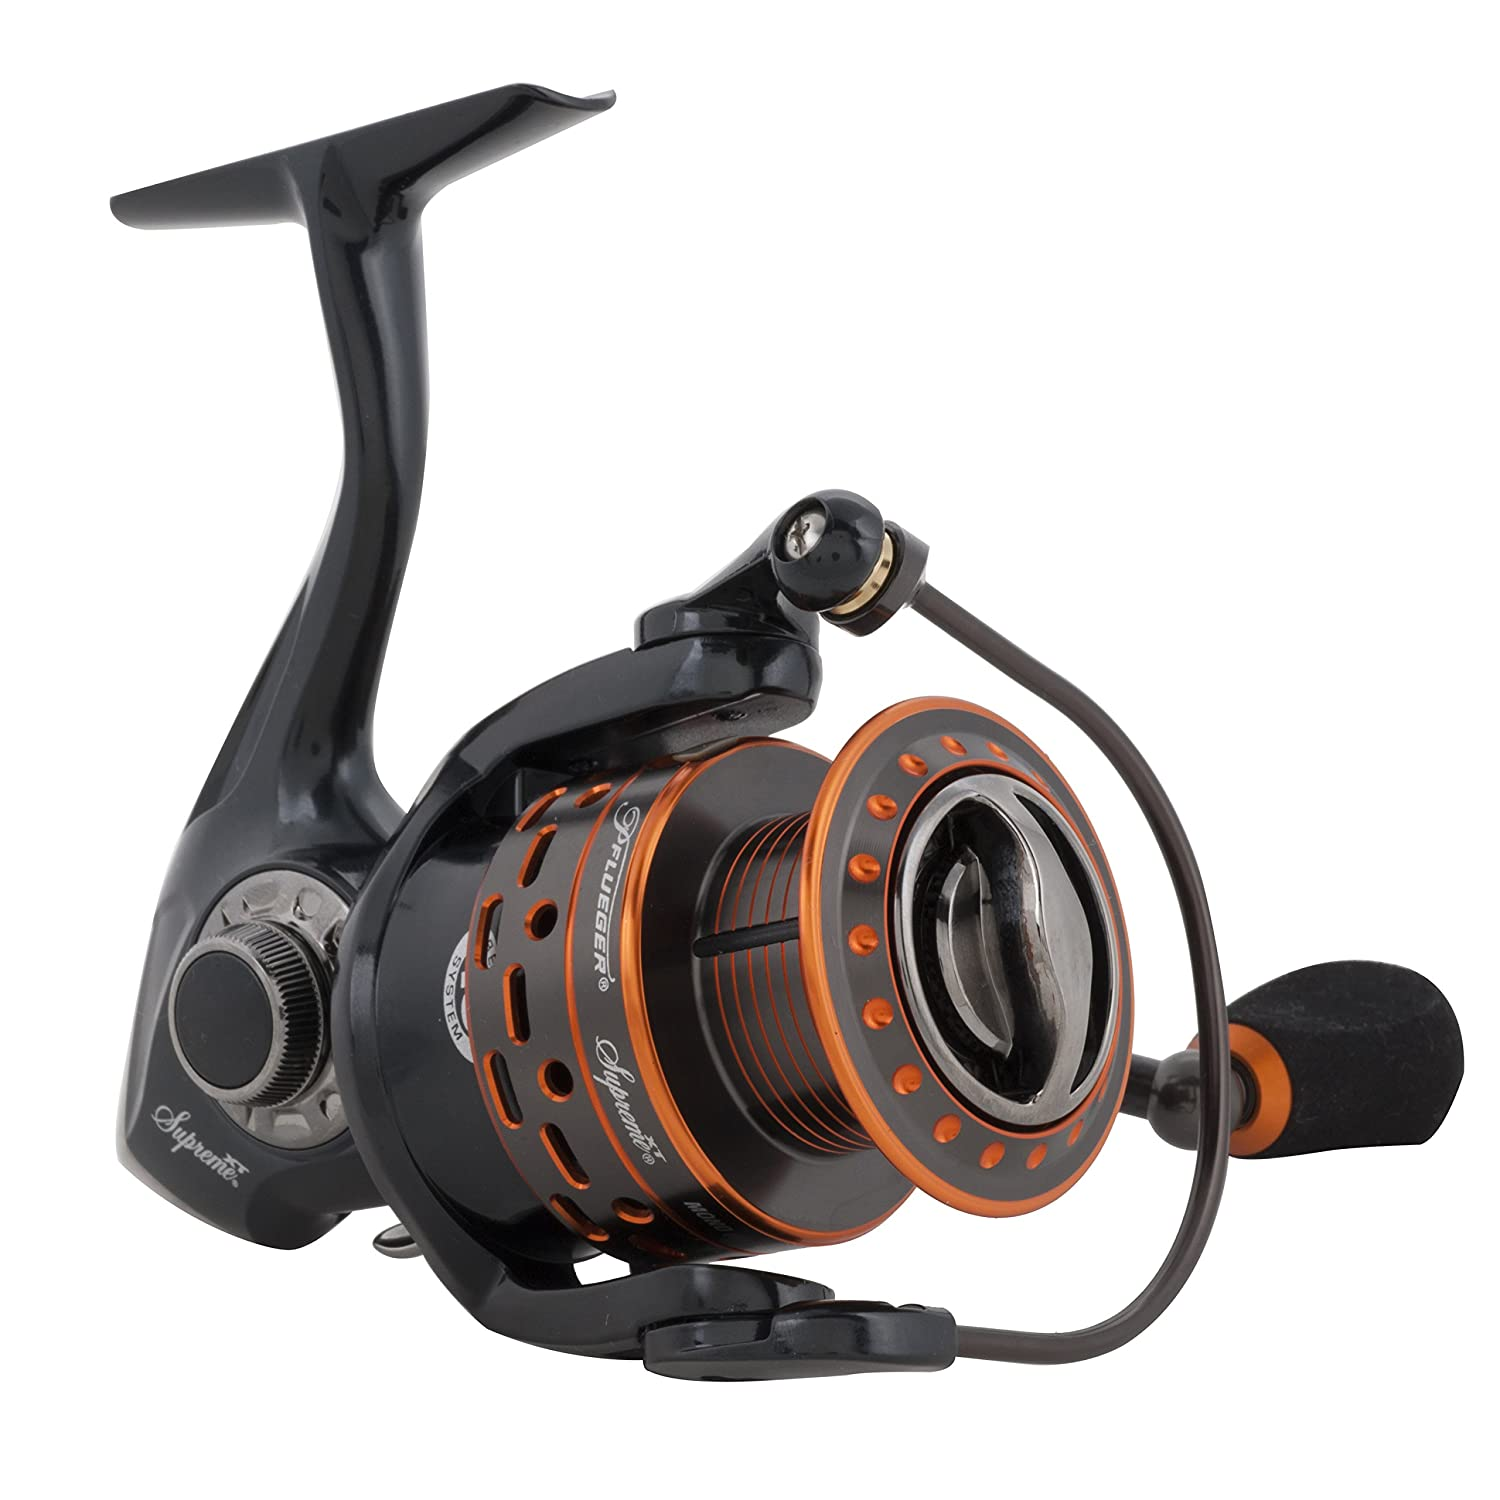 Best ultralight spinning reel for fishing updated for Keep it reel fishing